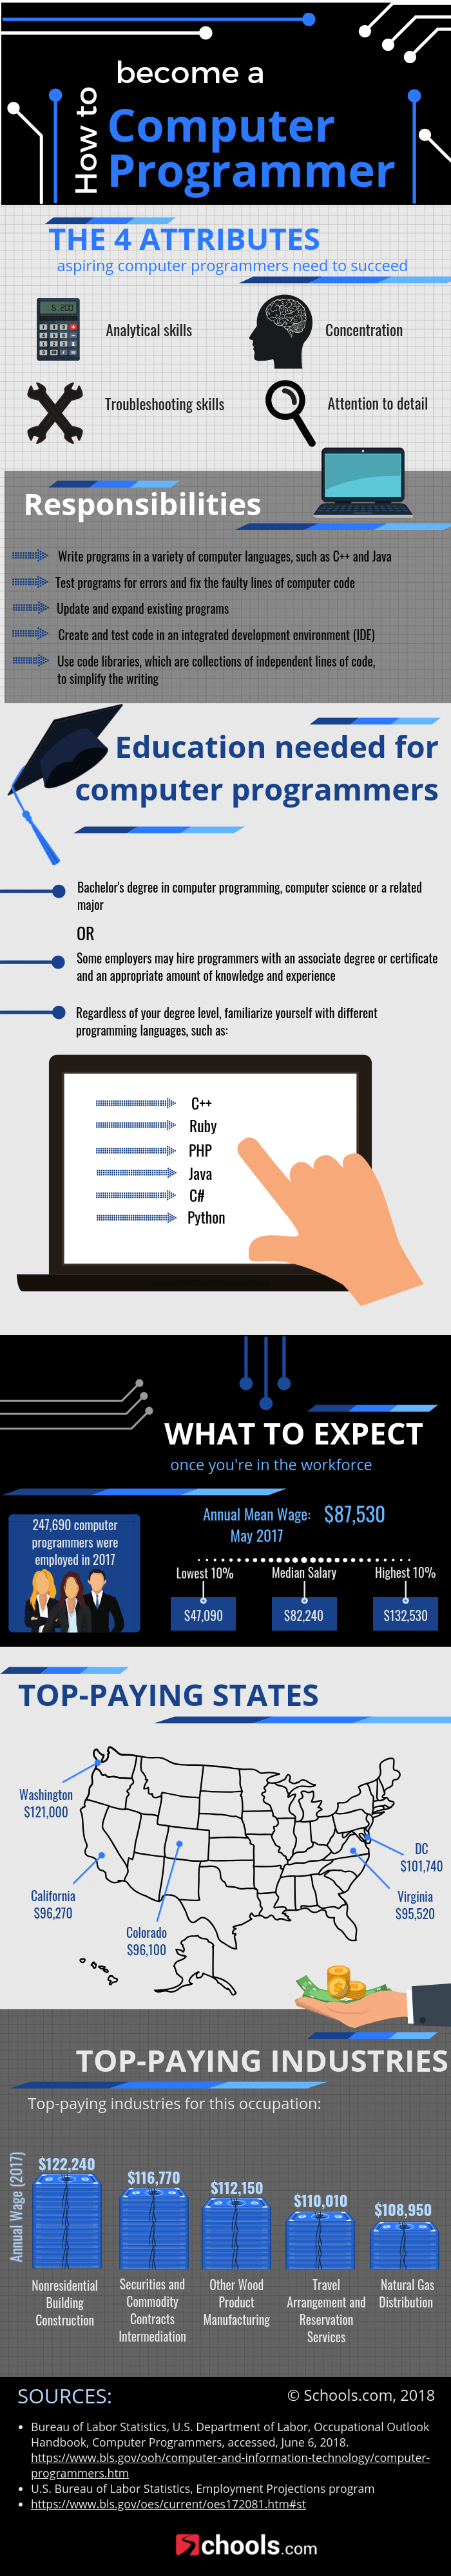 How to Prepare for a Career as a Computer Programmer - Infographic